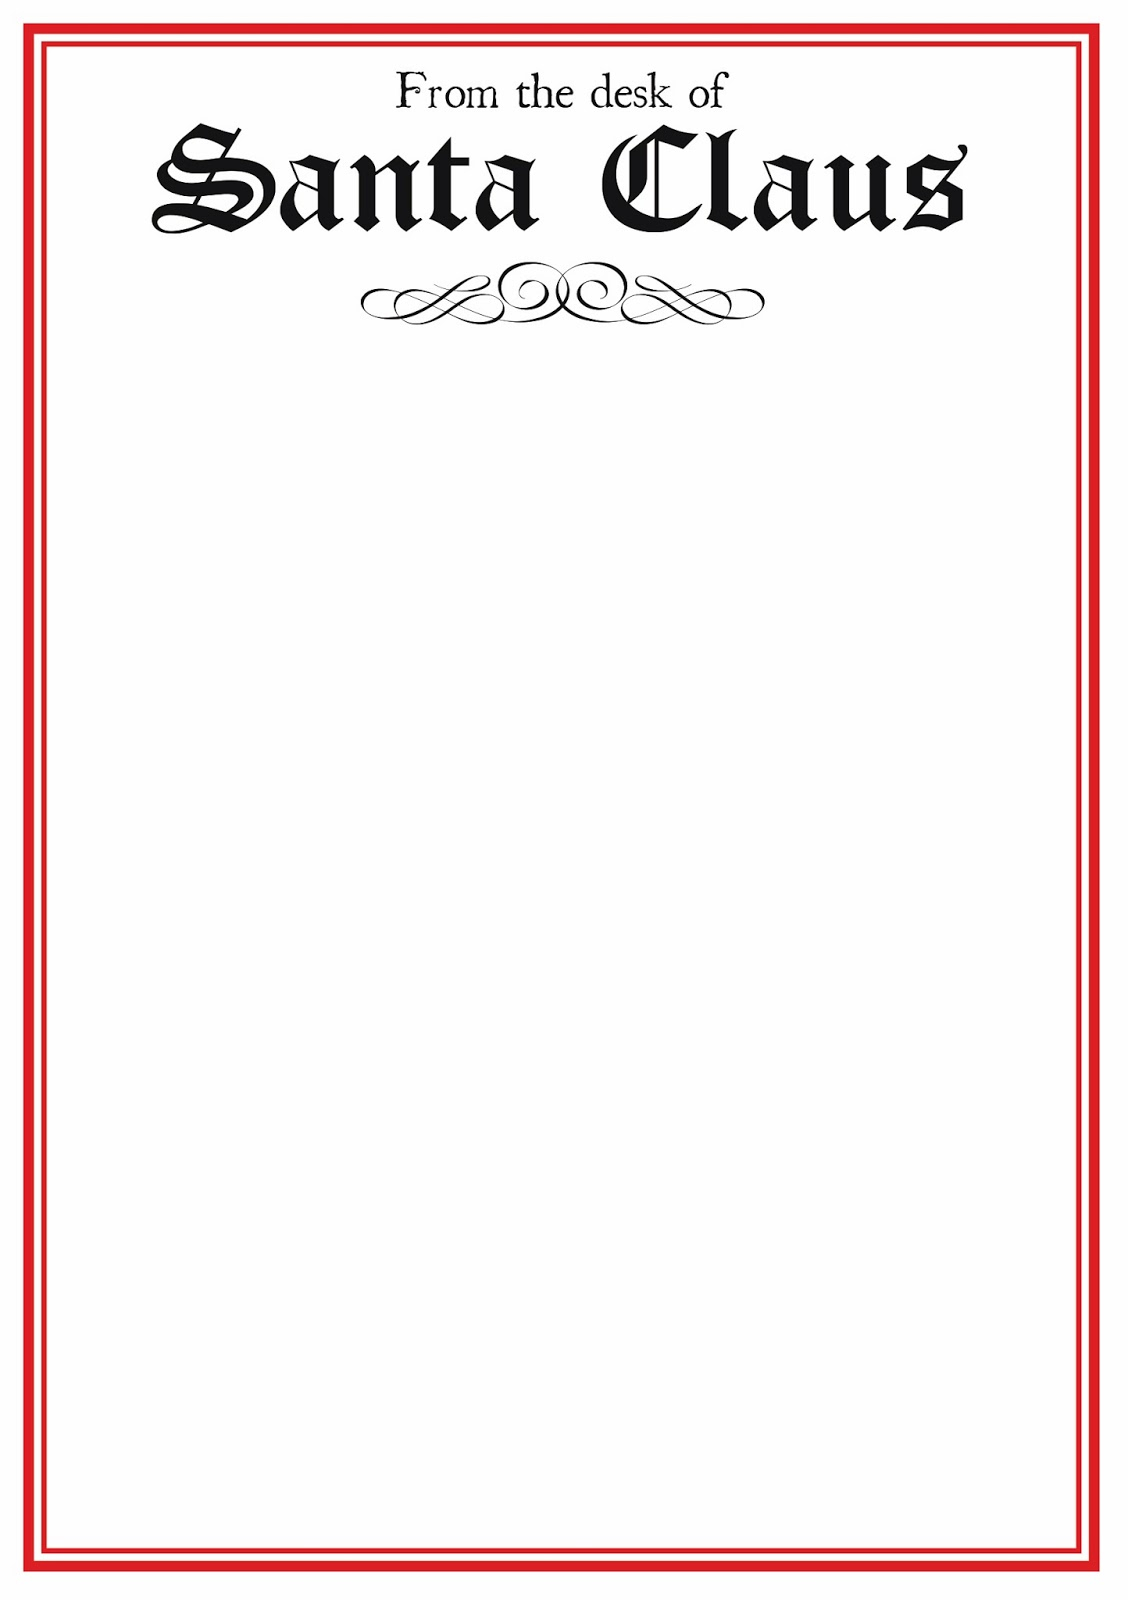 free printable letter from santa template word Collection-word santa letter template 19-k